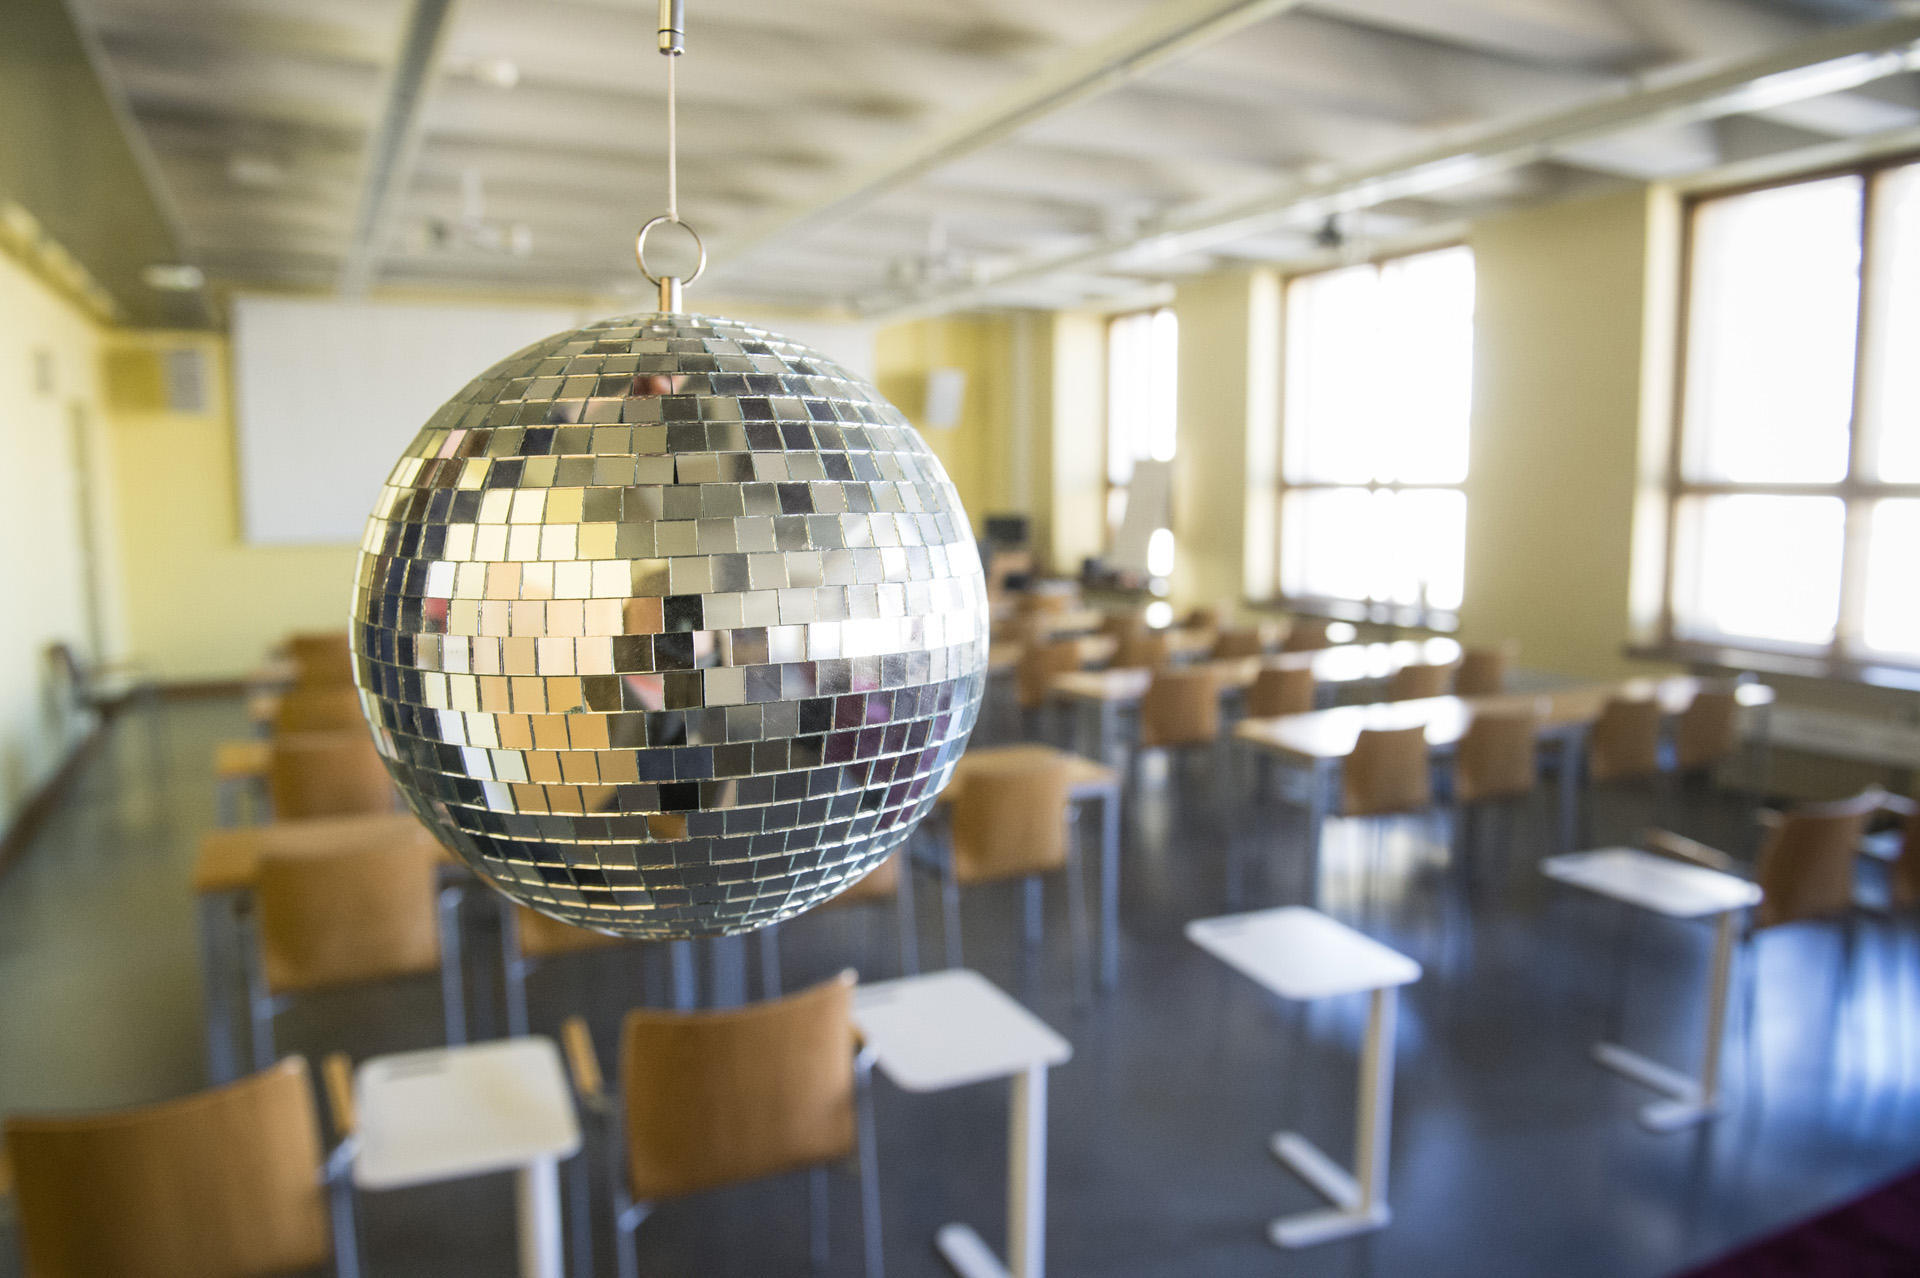 A disco ball is hanging from the ceiling at the Collegium.